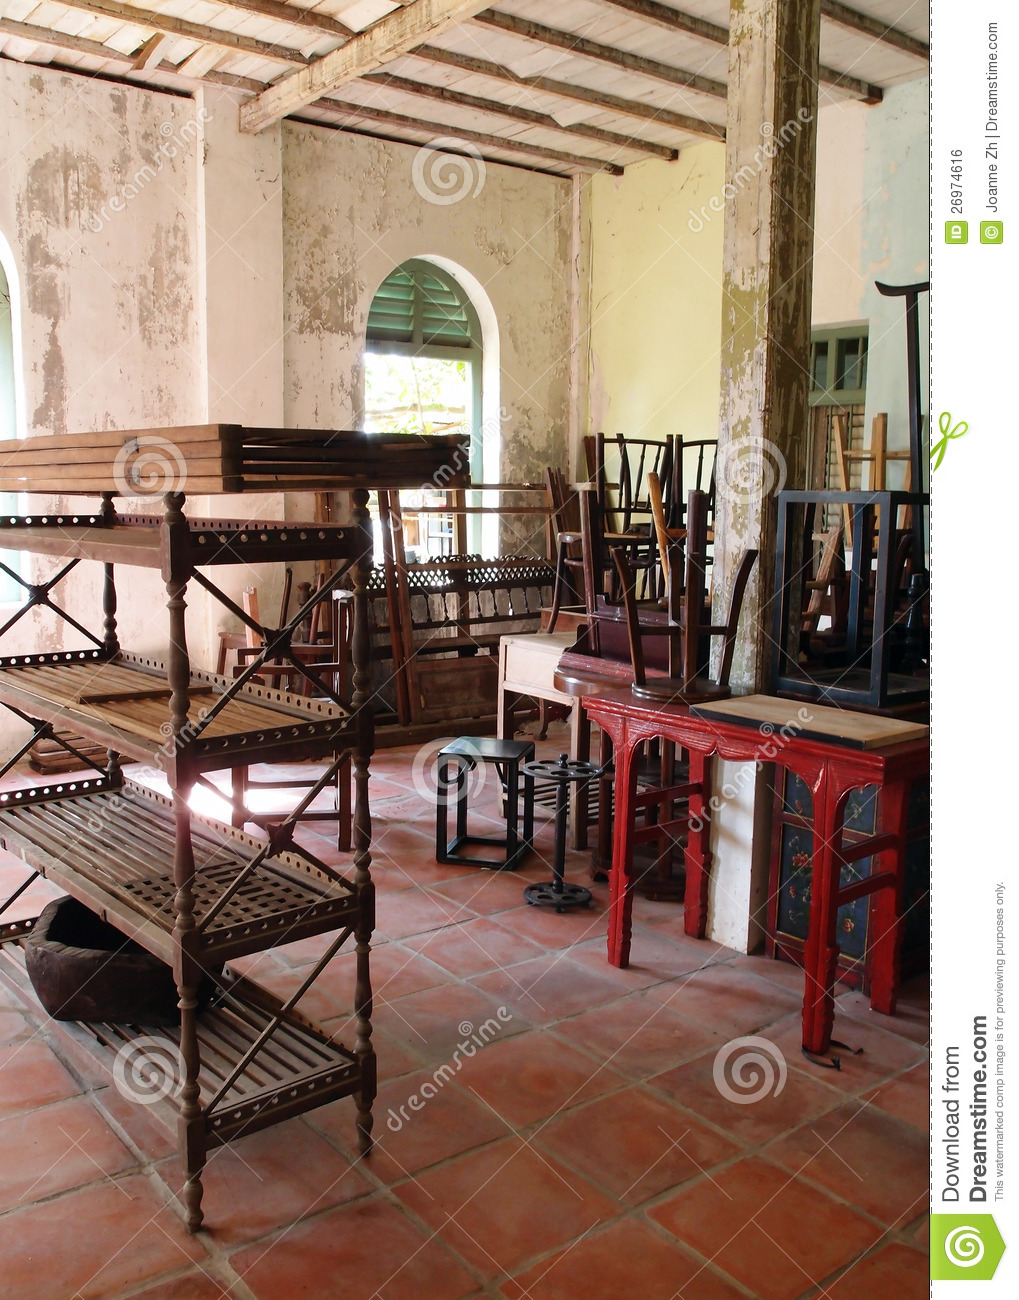 Discarded Old Furniture In Empty House Royalty Free Stock